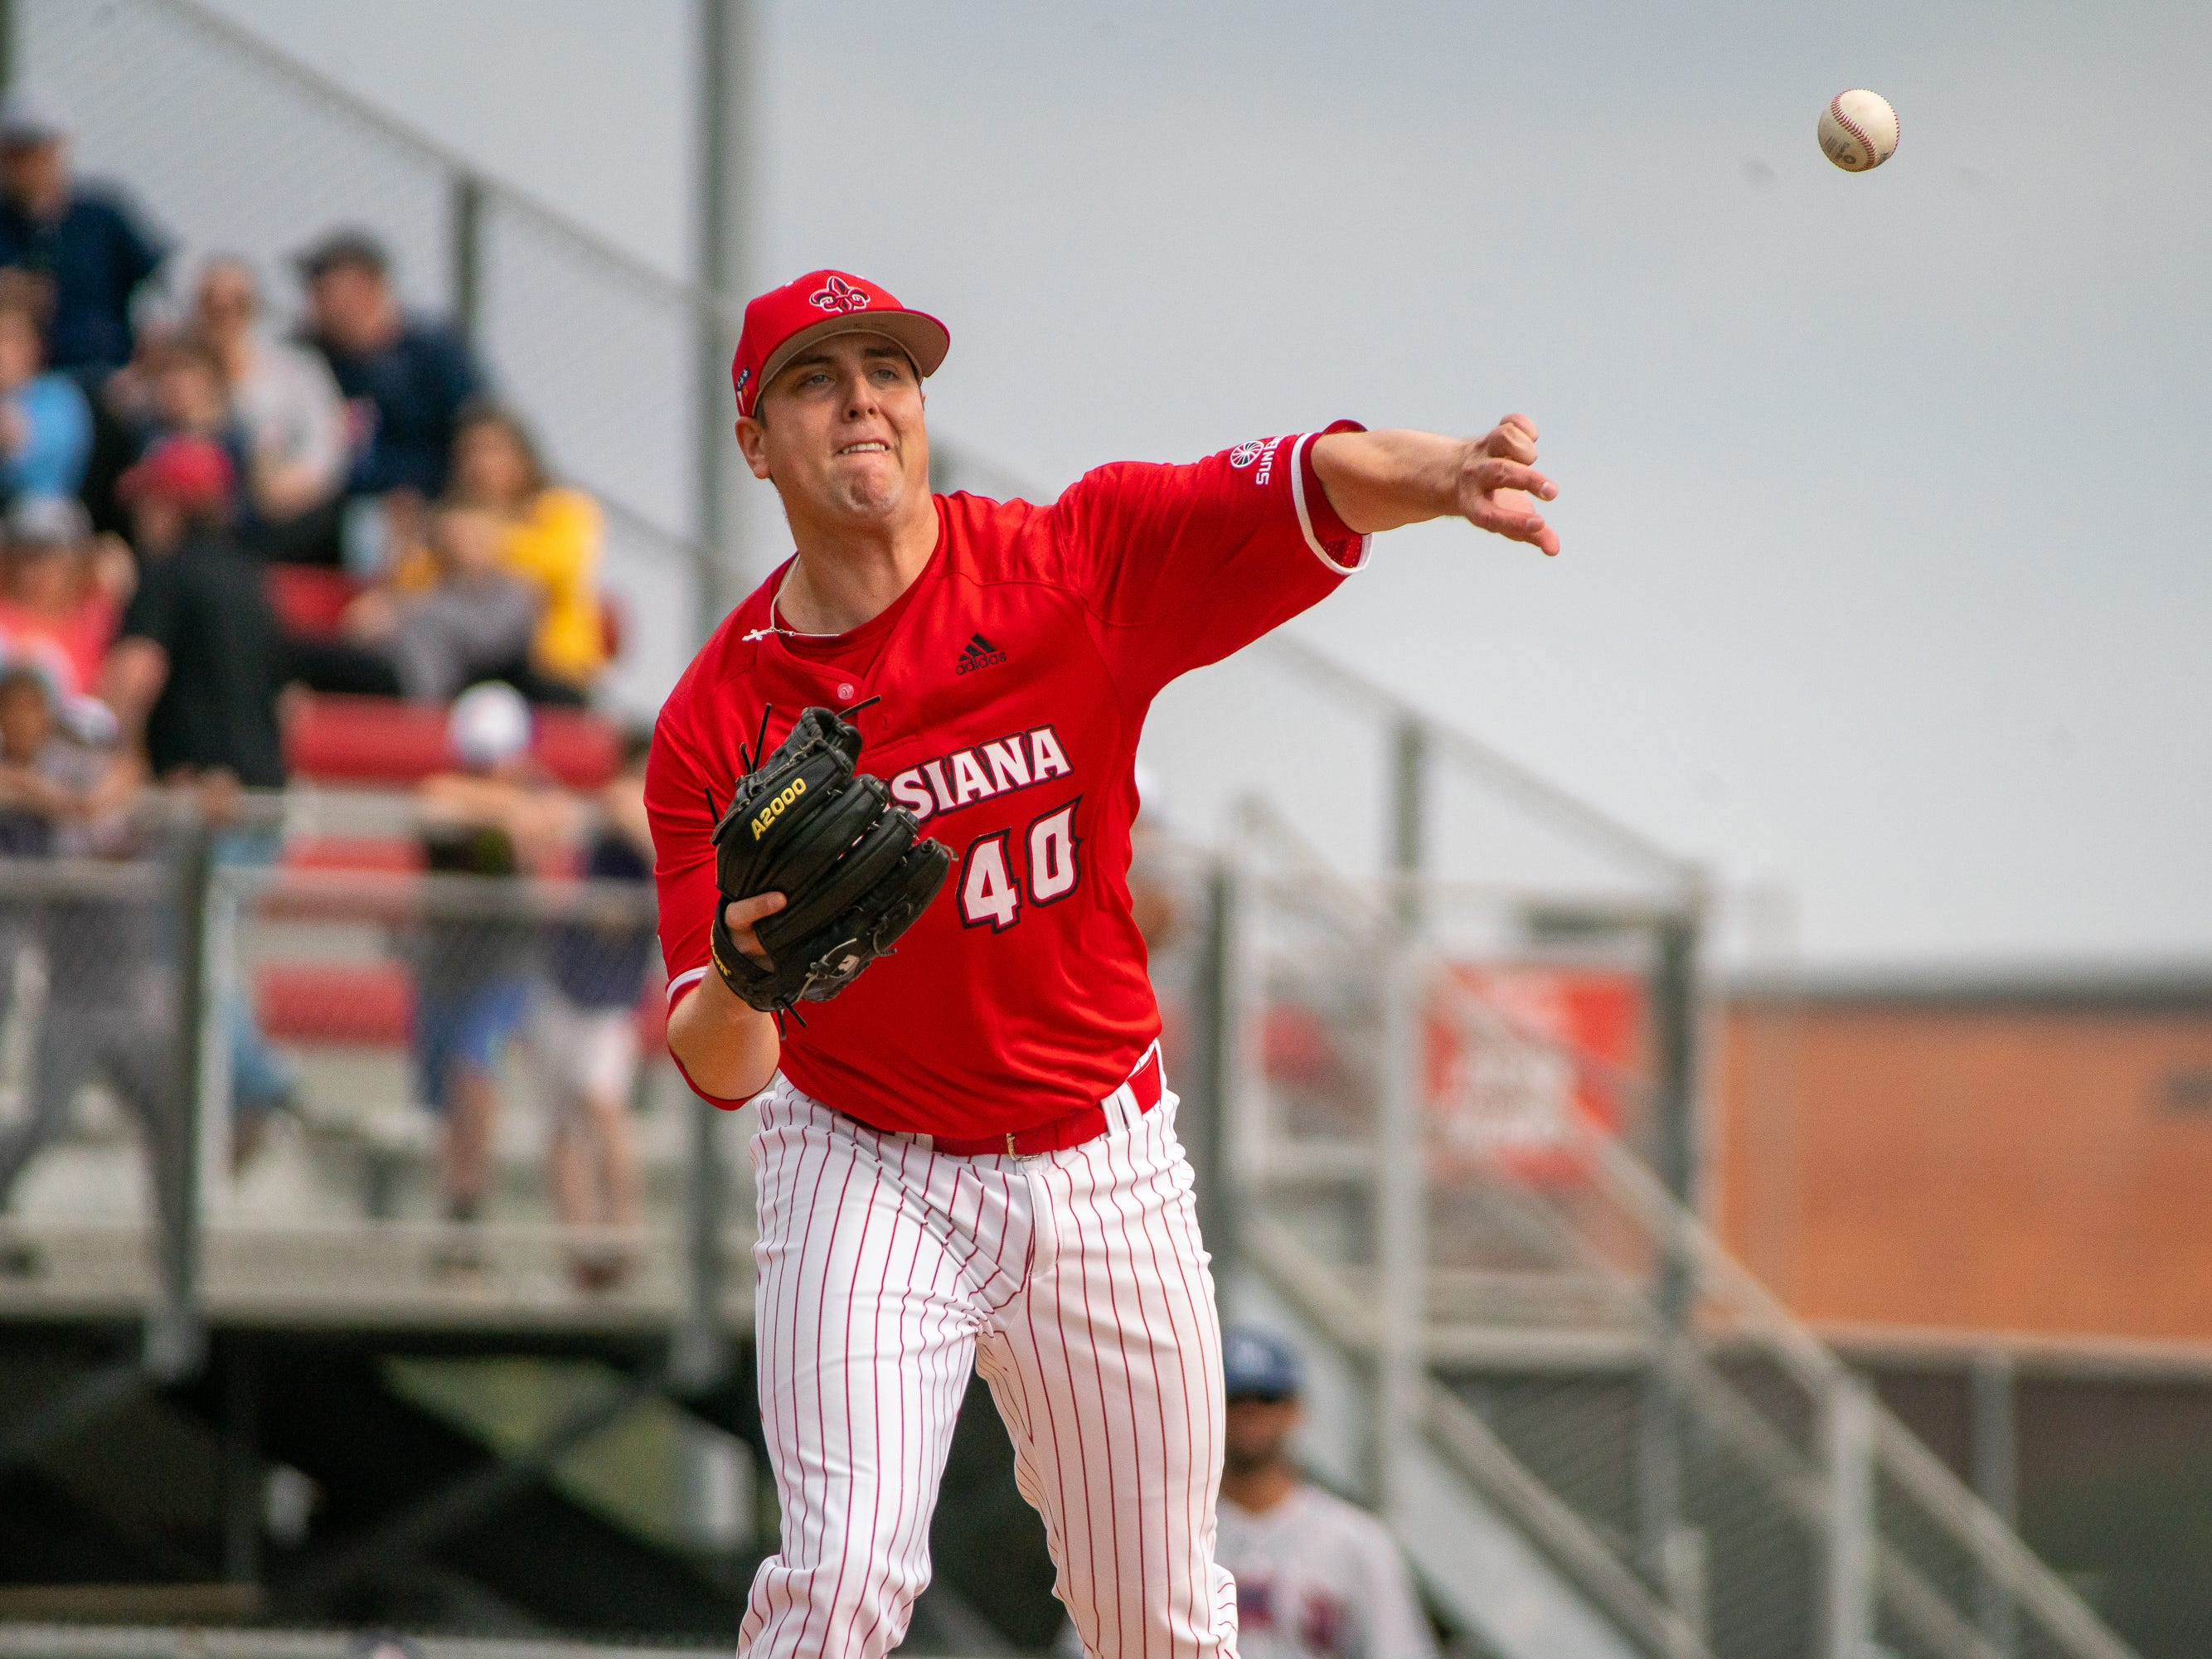 UL's pitcher Dalton Horton throws to first base as the Ragin' Cajuns take on the Loyola-Marymount Lions at M.L. Tigue Moore Field on Saturday, March 9, 2019.